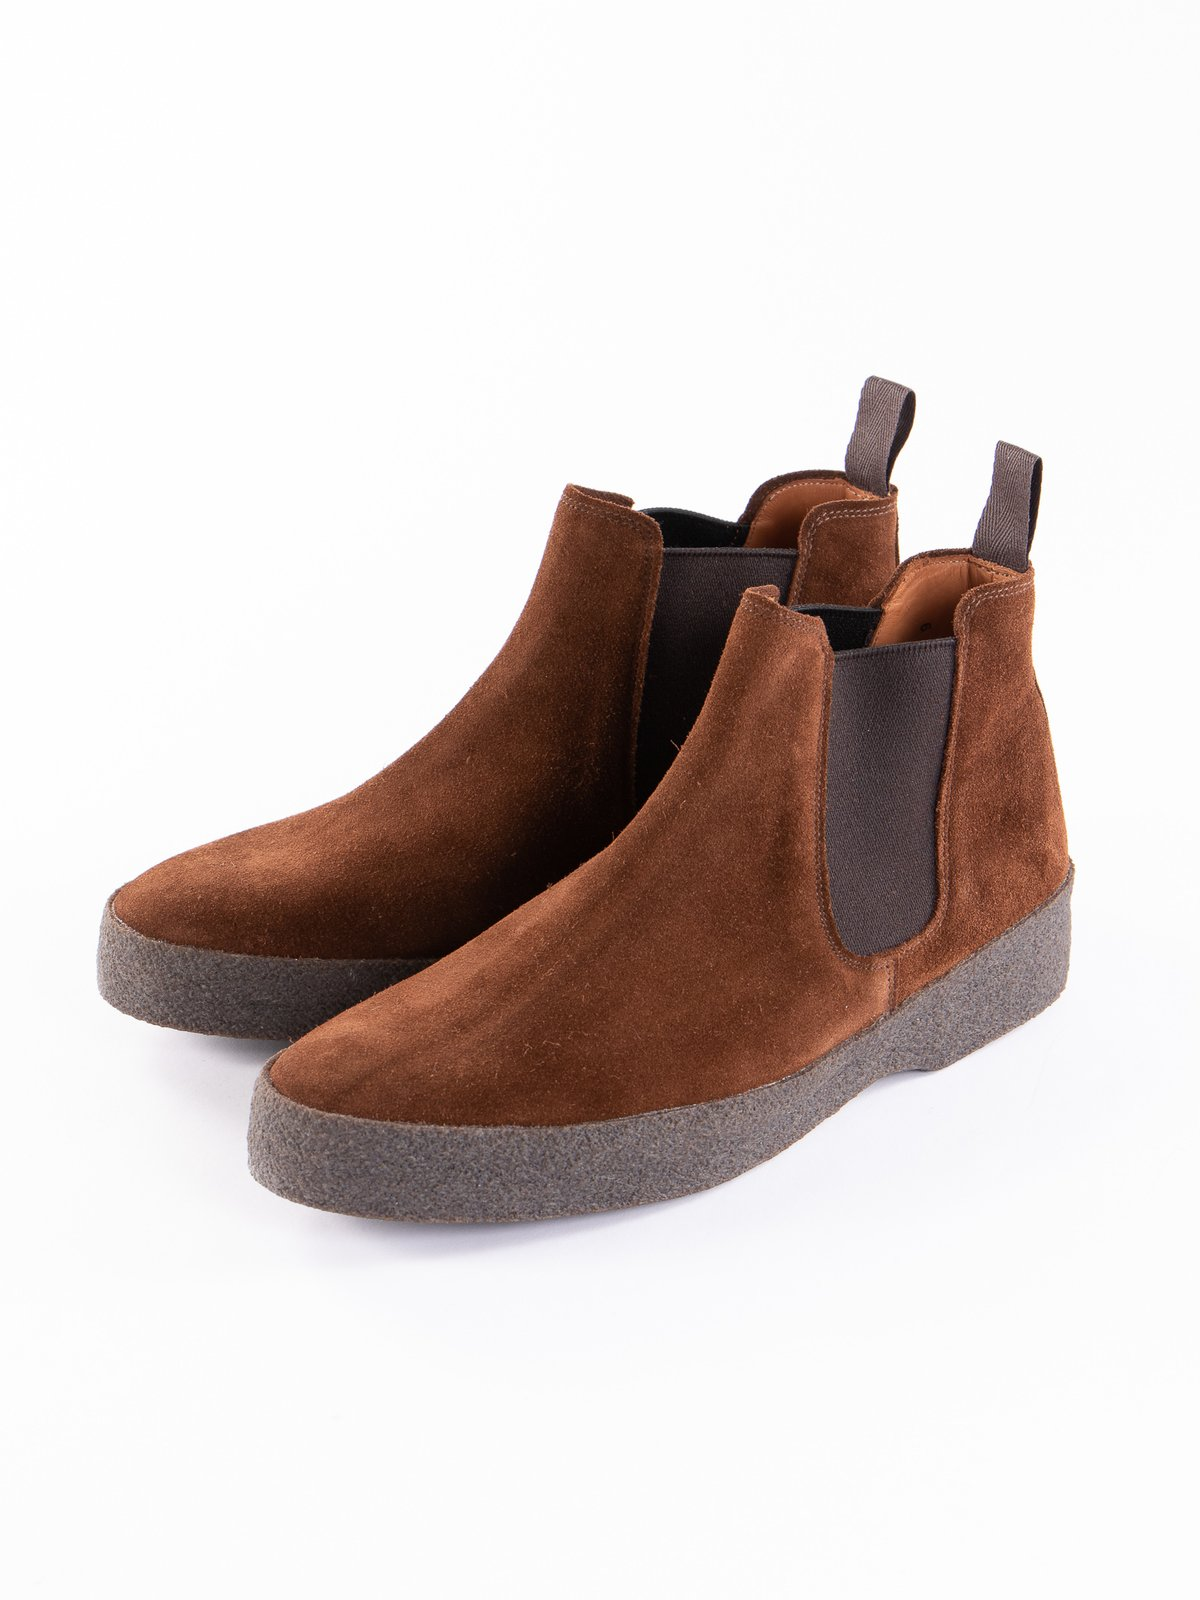 Polo Snuff Suede Chelsea Boot - Image 2